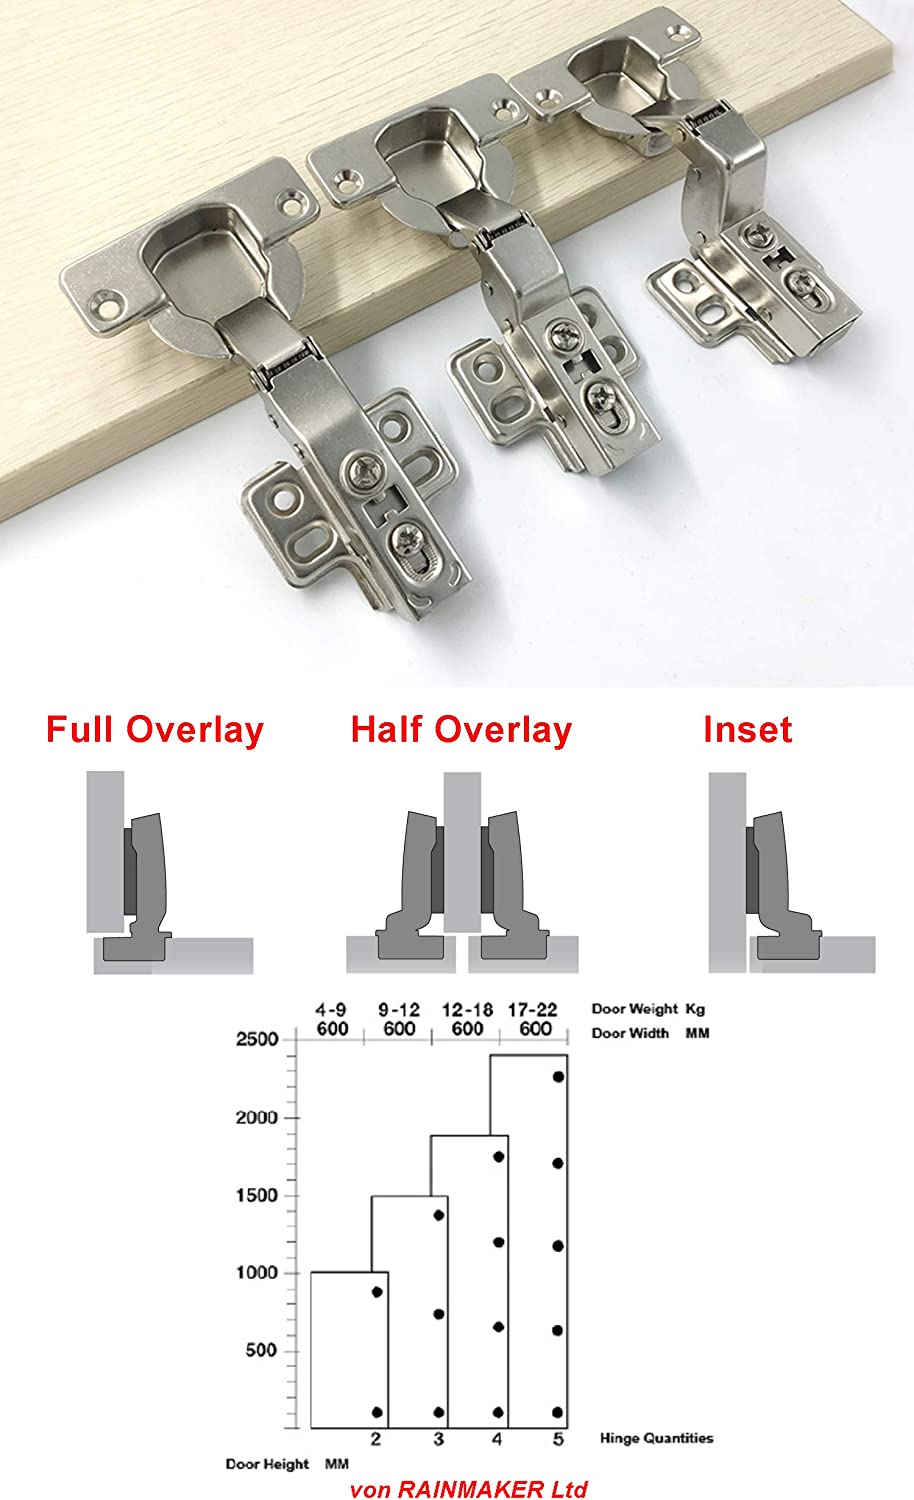 LOOTICH 95 Degree Half Overlay 40mm Soft Close Hinges with Hydraulic Damper for Kitchen Cabinet Cupboard Wardrobe Heavy Thick Door Hinges with Cushioning Buffering Mechanism Pack of 8